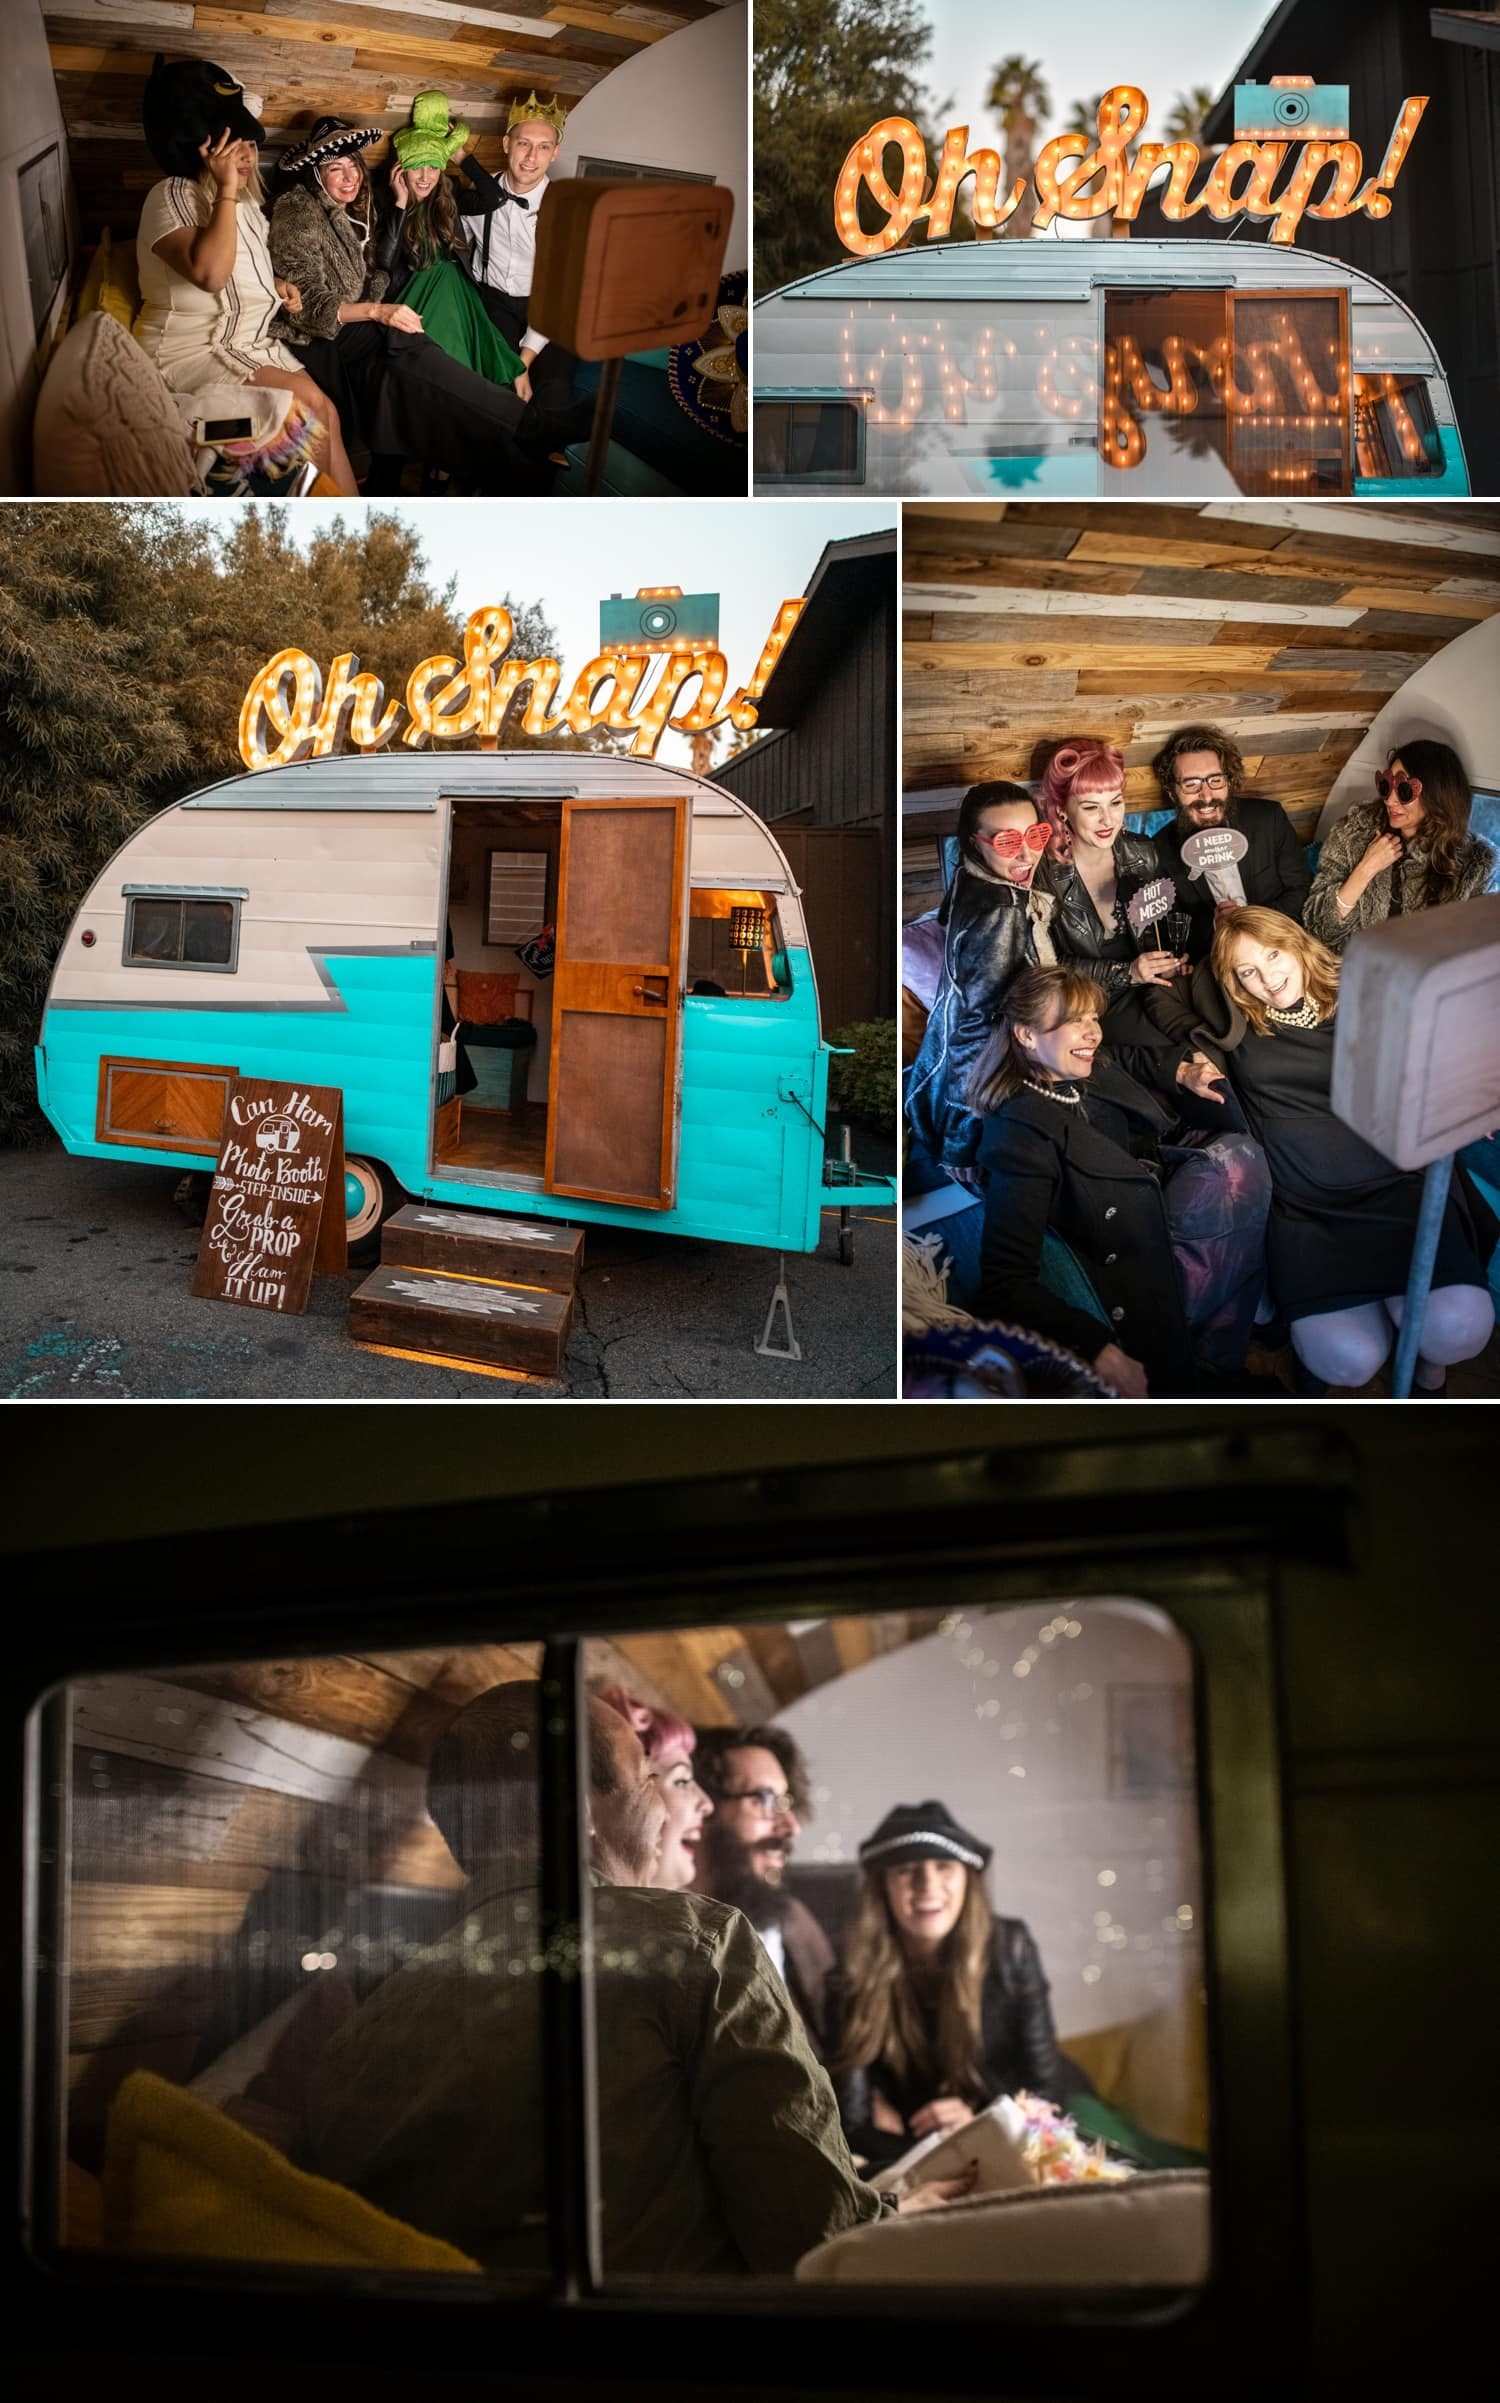 vintage photo booth trailer at ethereal open air resort